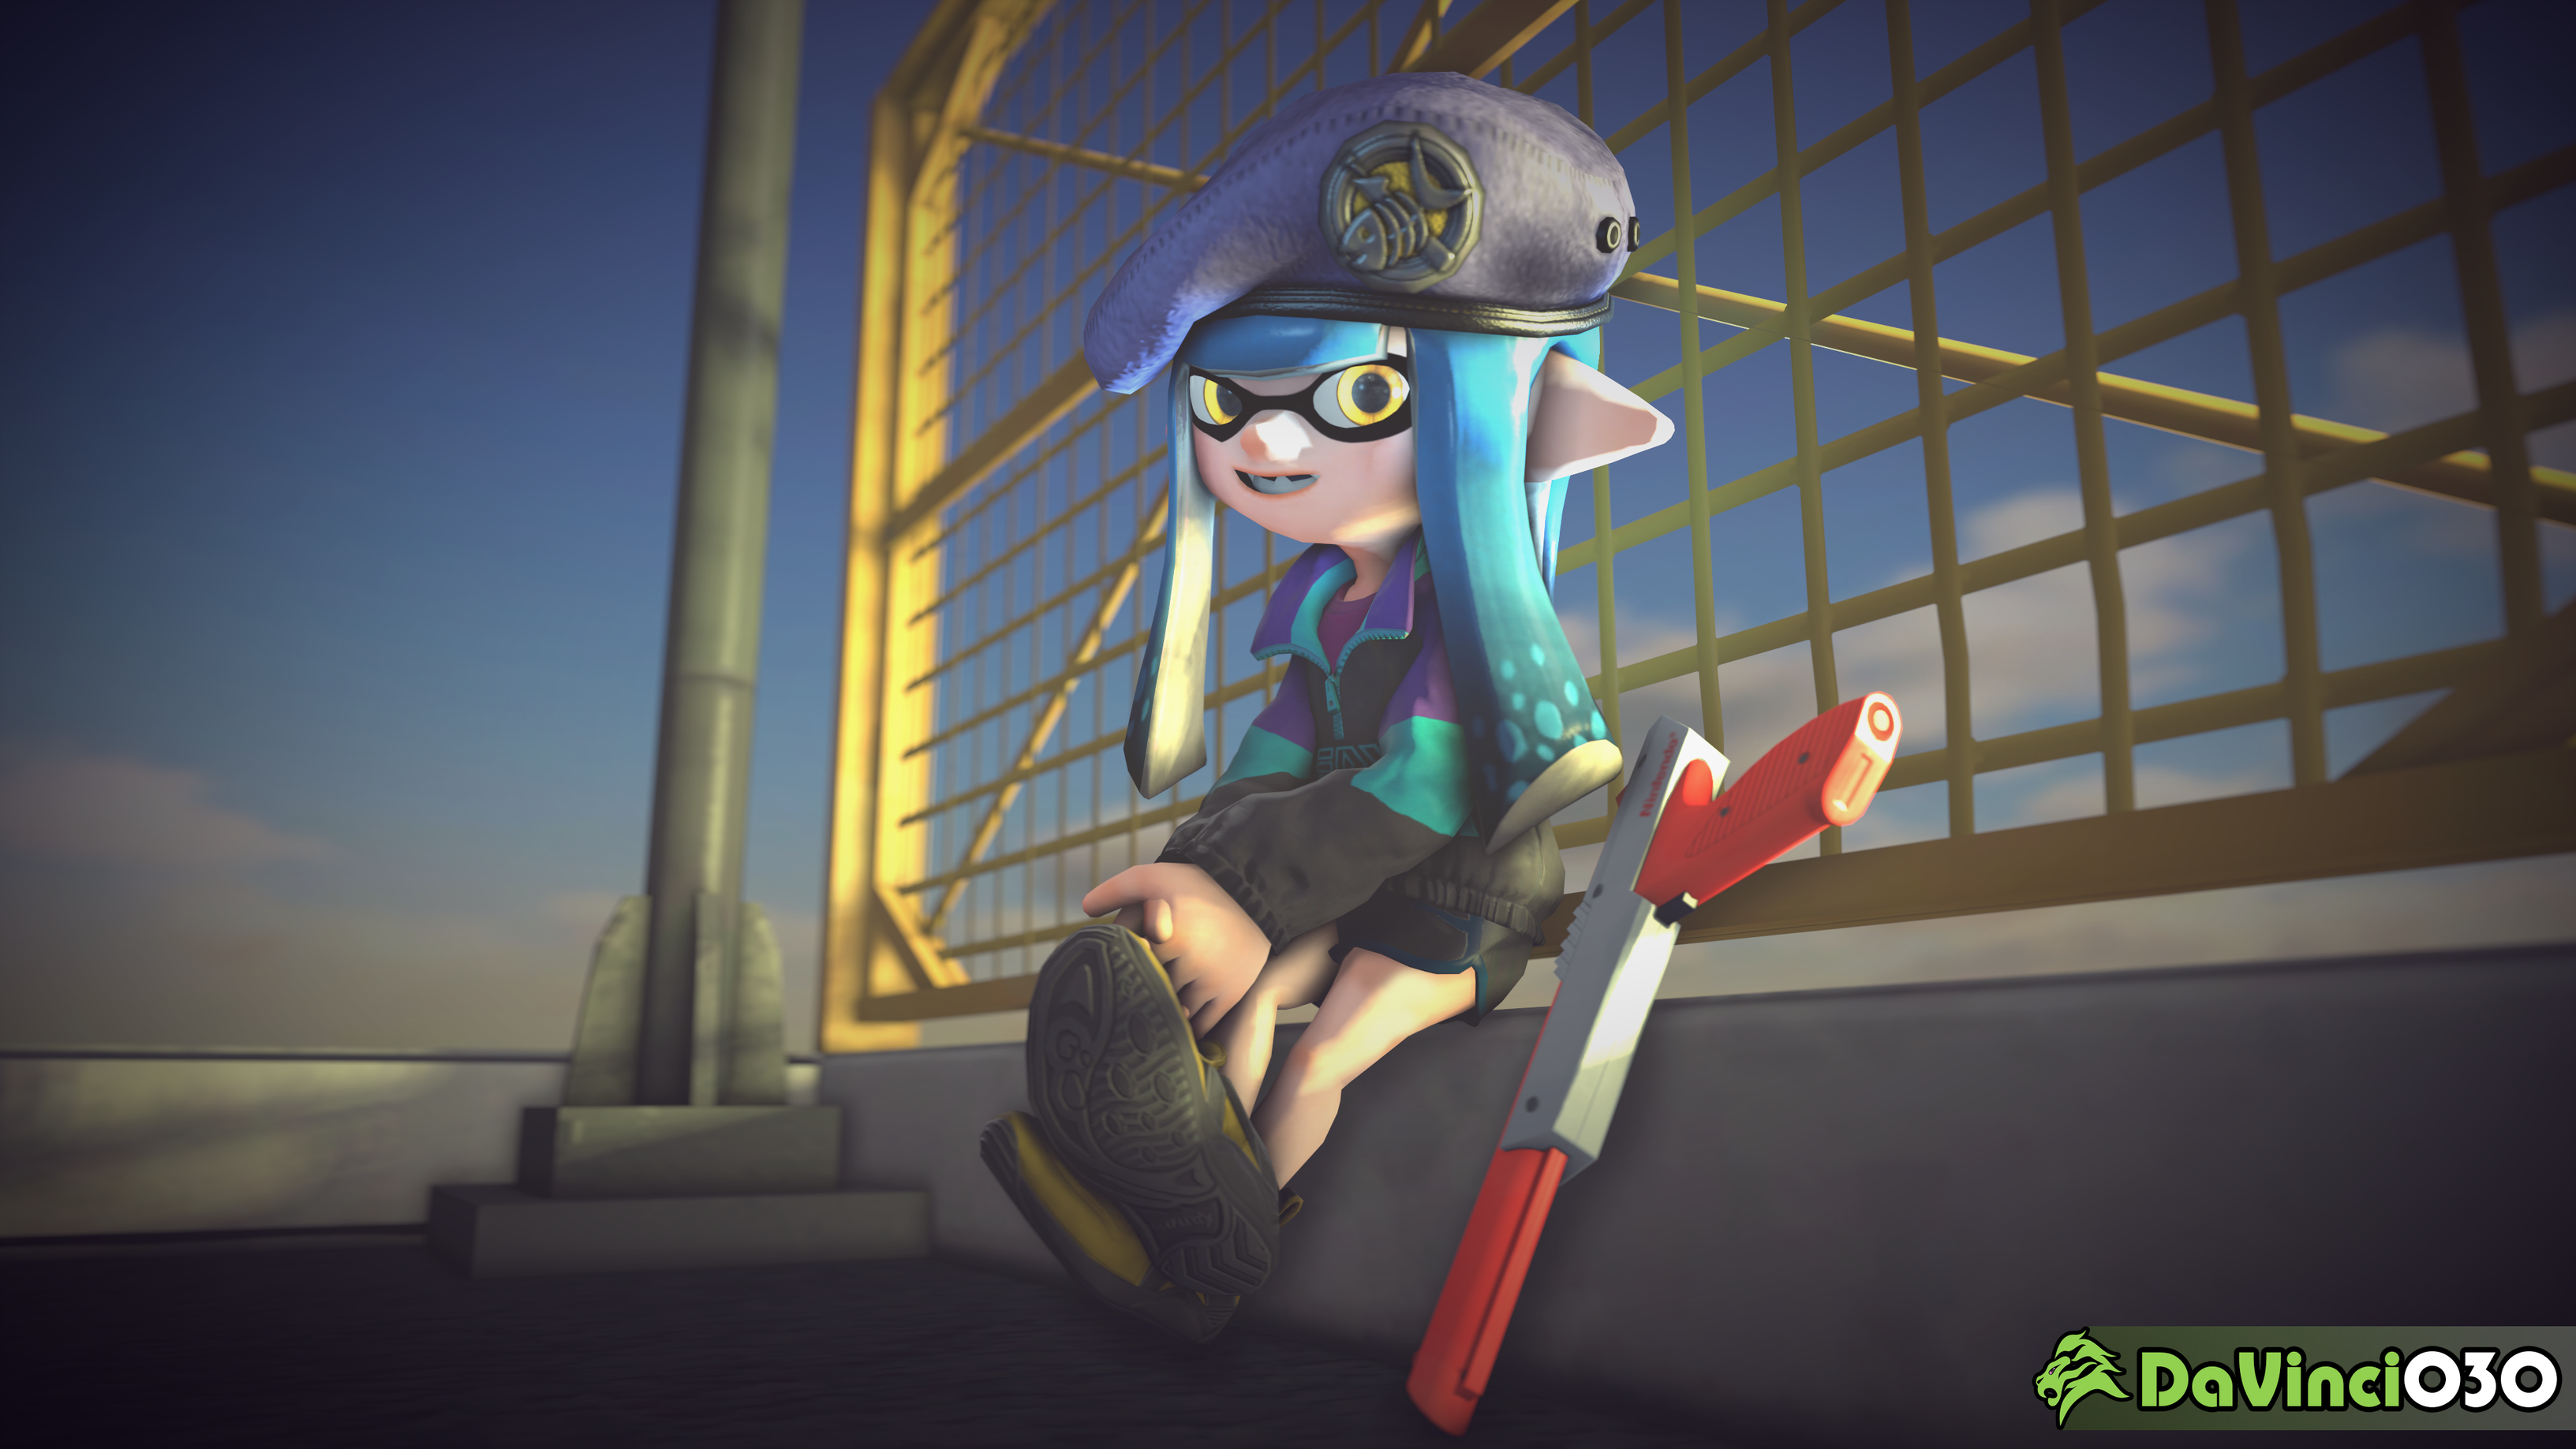 [SFM] Sitting and relaxing... by DaVinci030